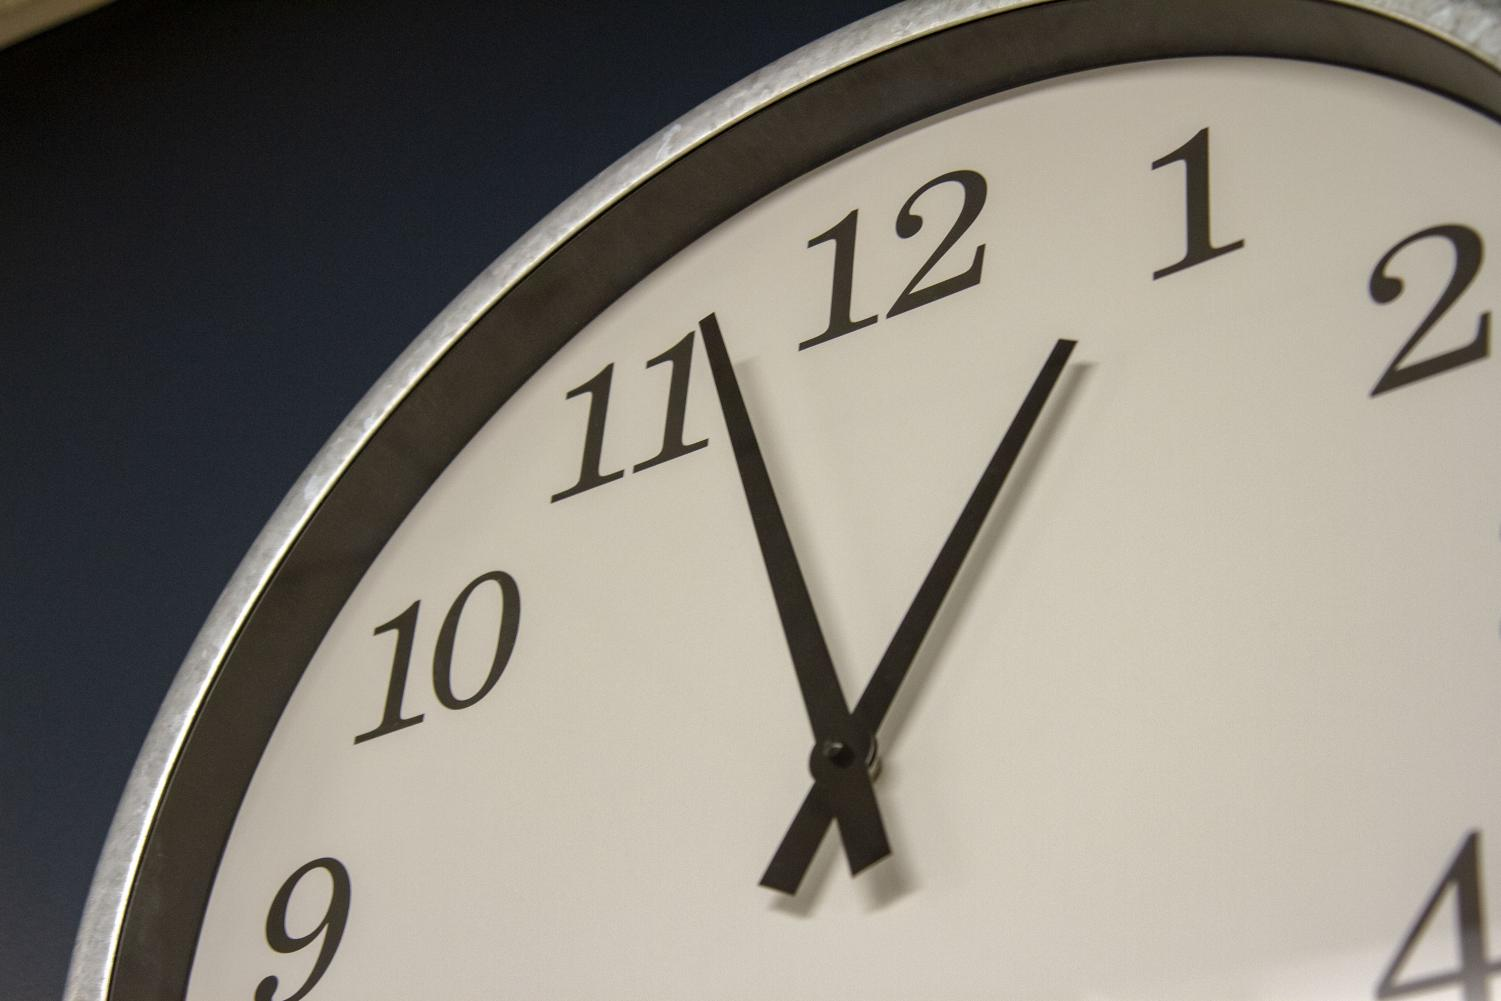 The twice-a-year time change of daylight saving time should be removed because the law is outdated and disruptive.